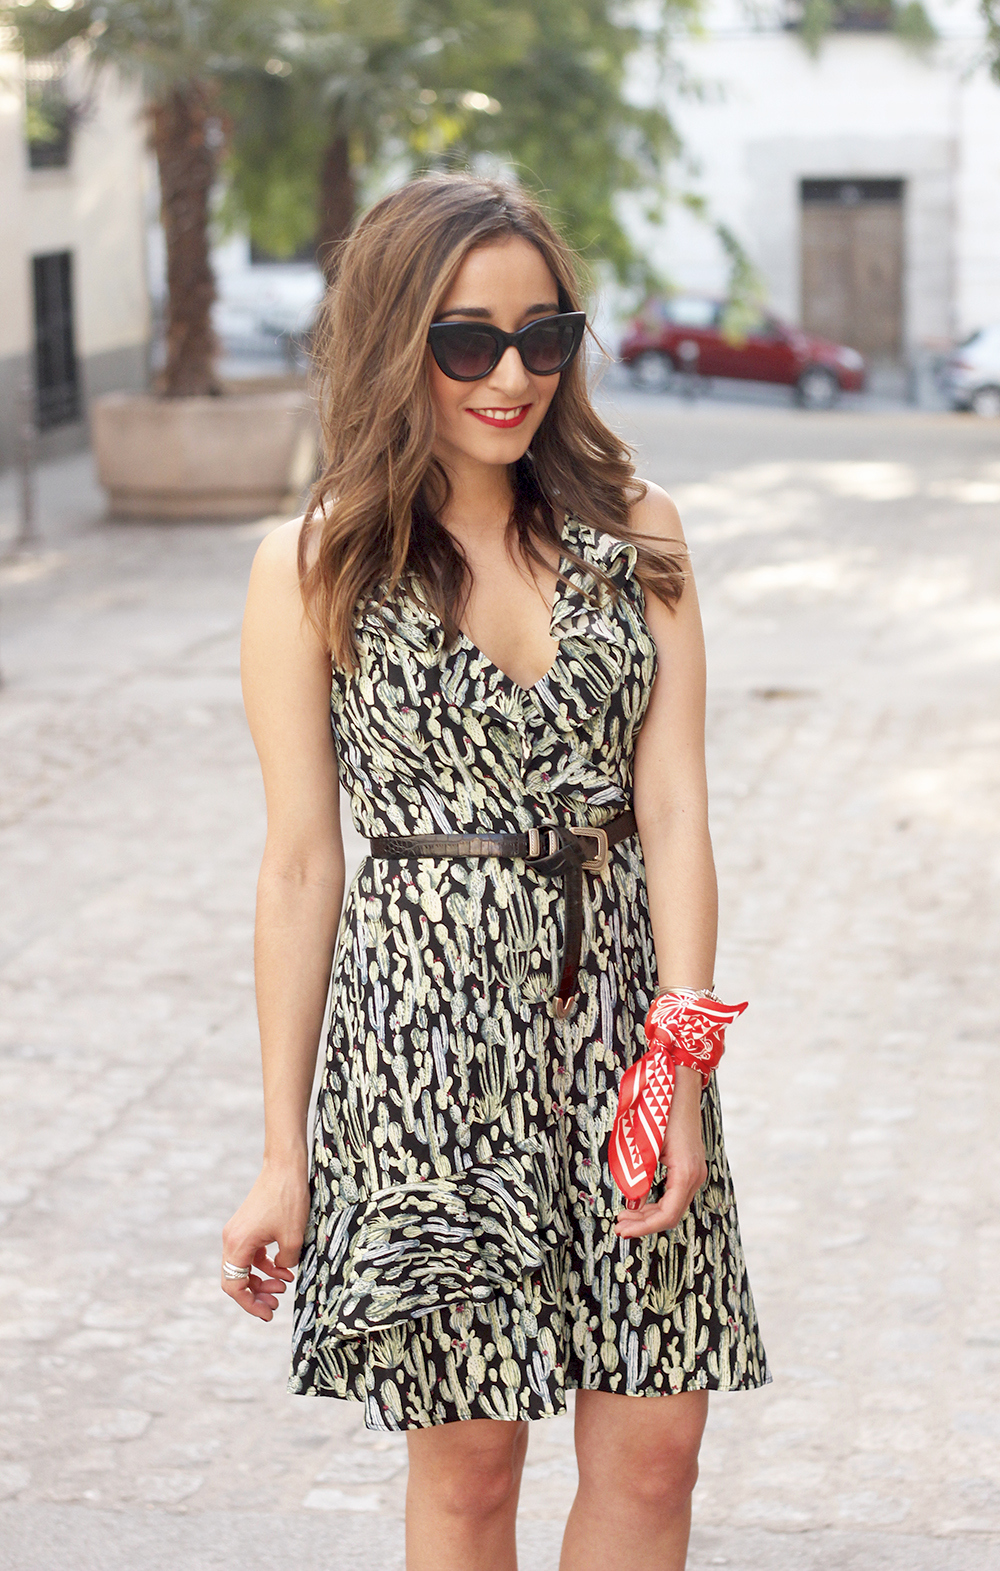 summer dress with cactus prints black sandals sunnies outfit style 20